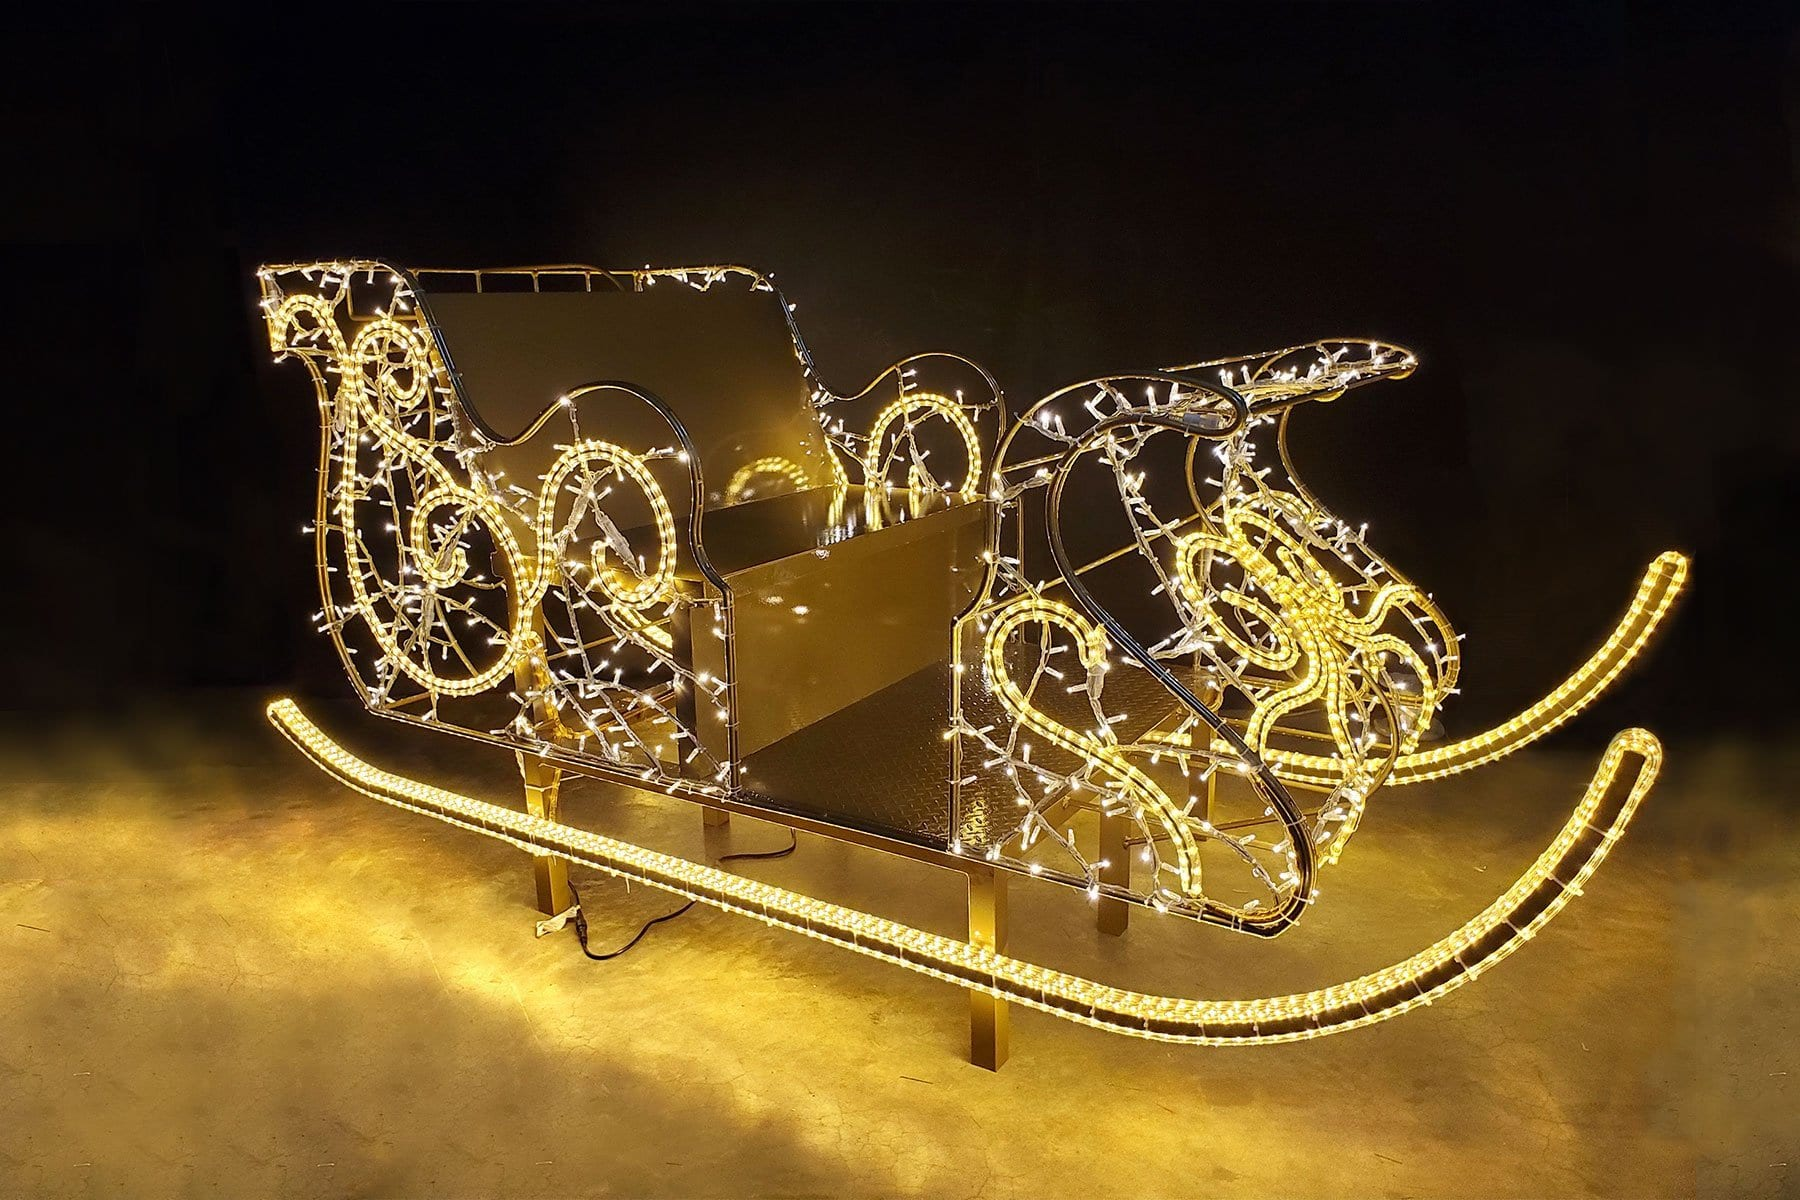 Interactive Sleigh in Lights